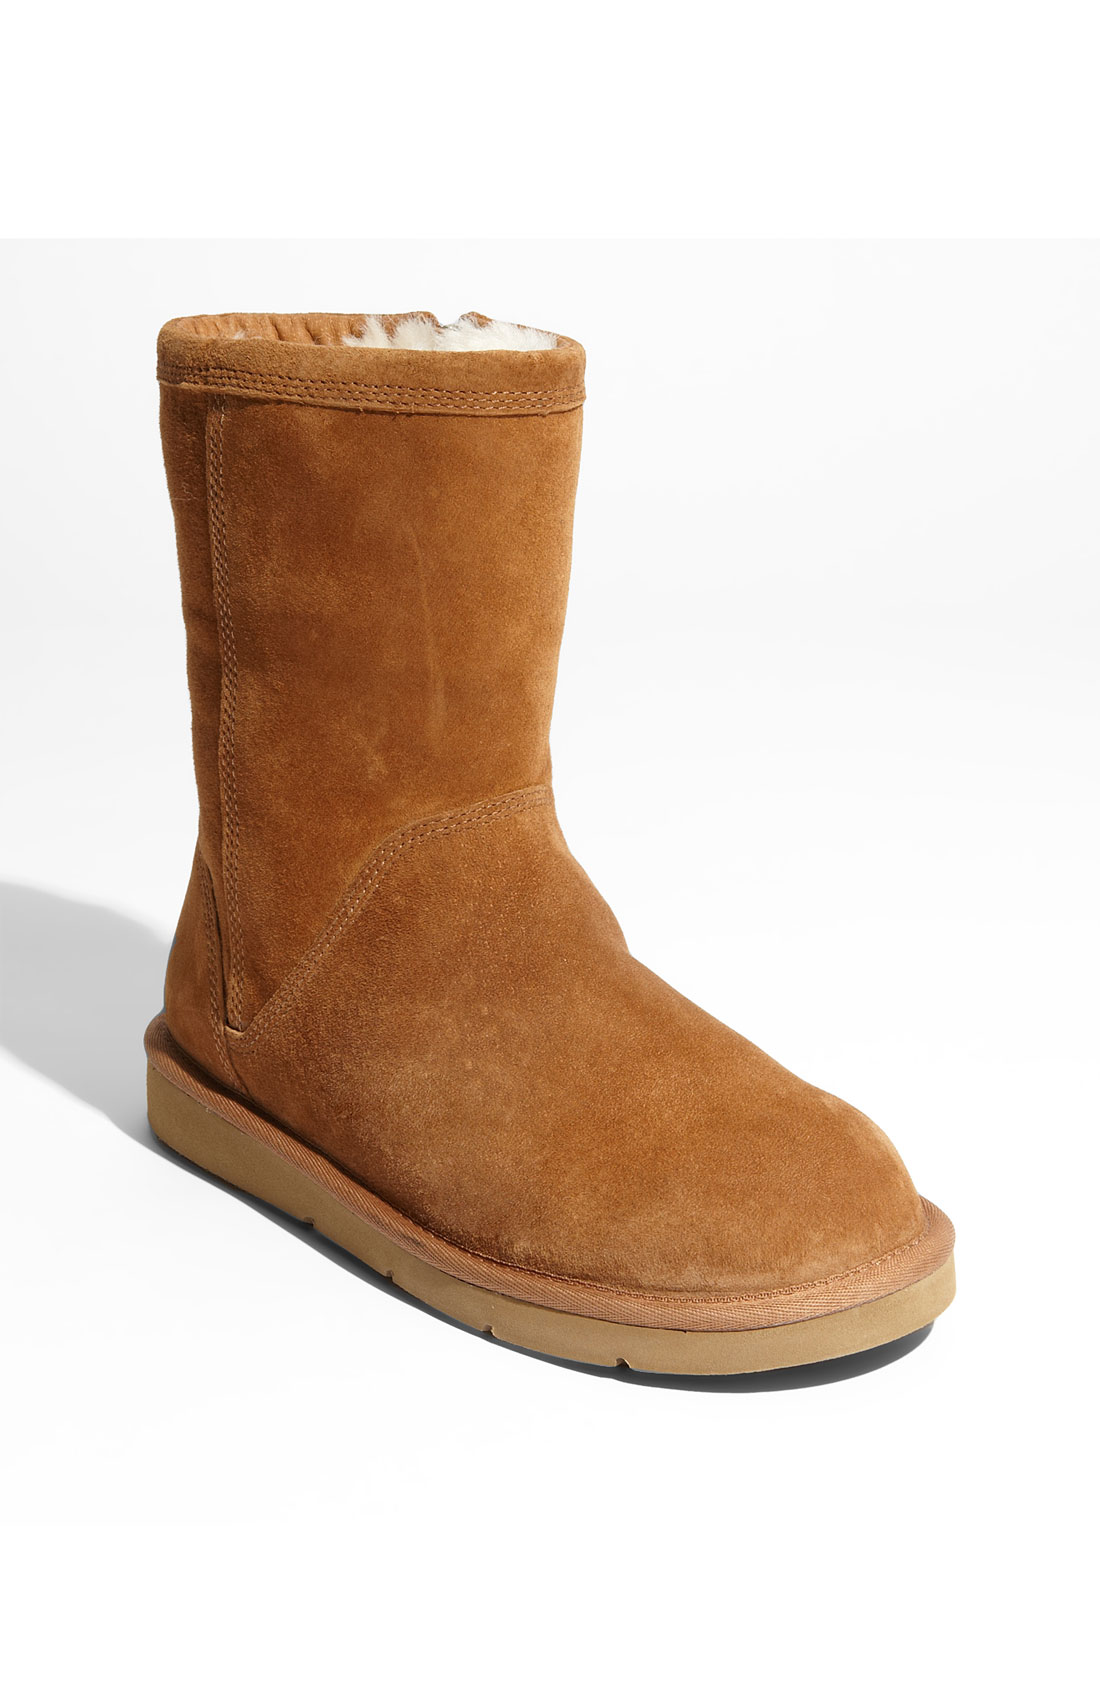 new ugg chestnut roslynn boots male models picture